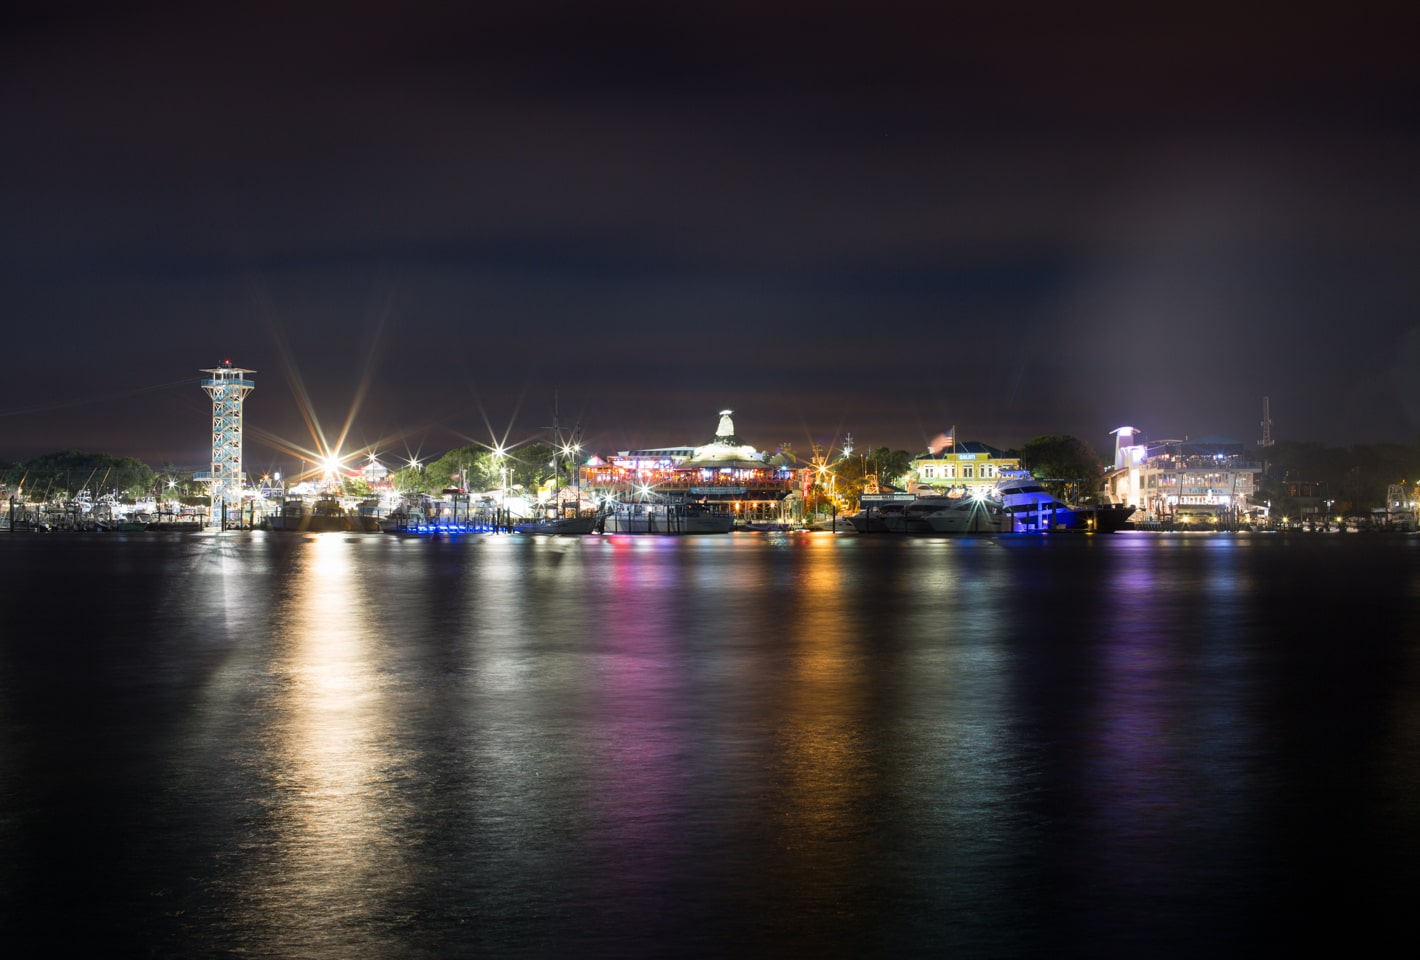 Destin, Florida harborwalk lit up at night